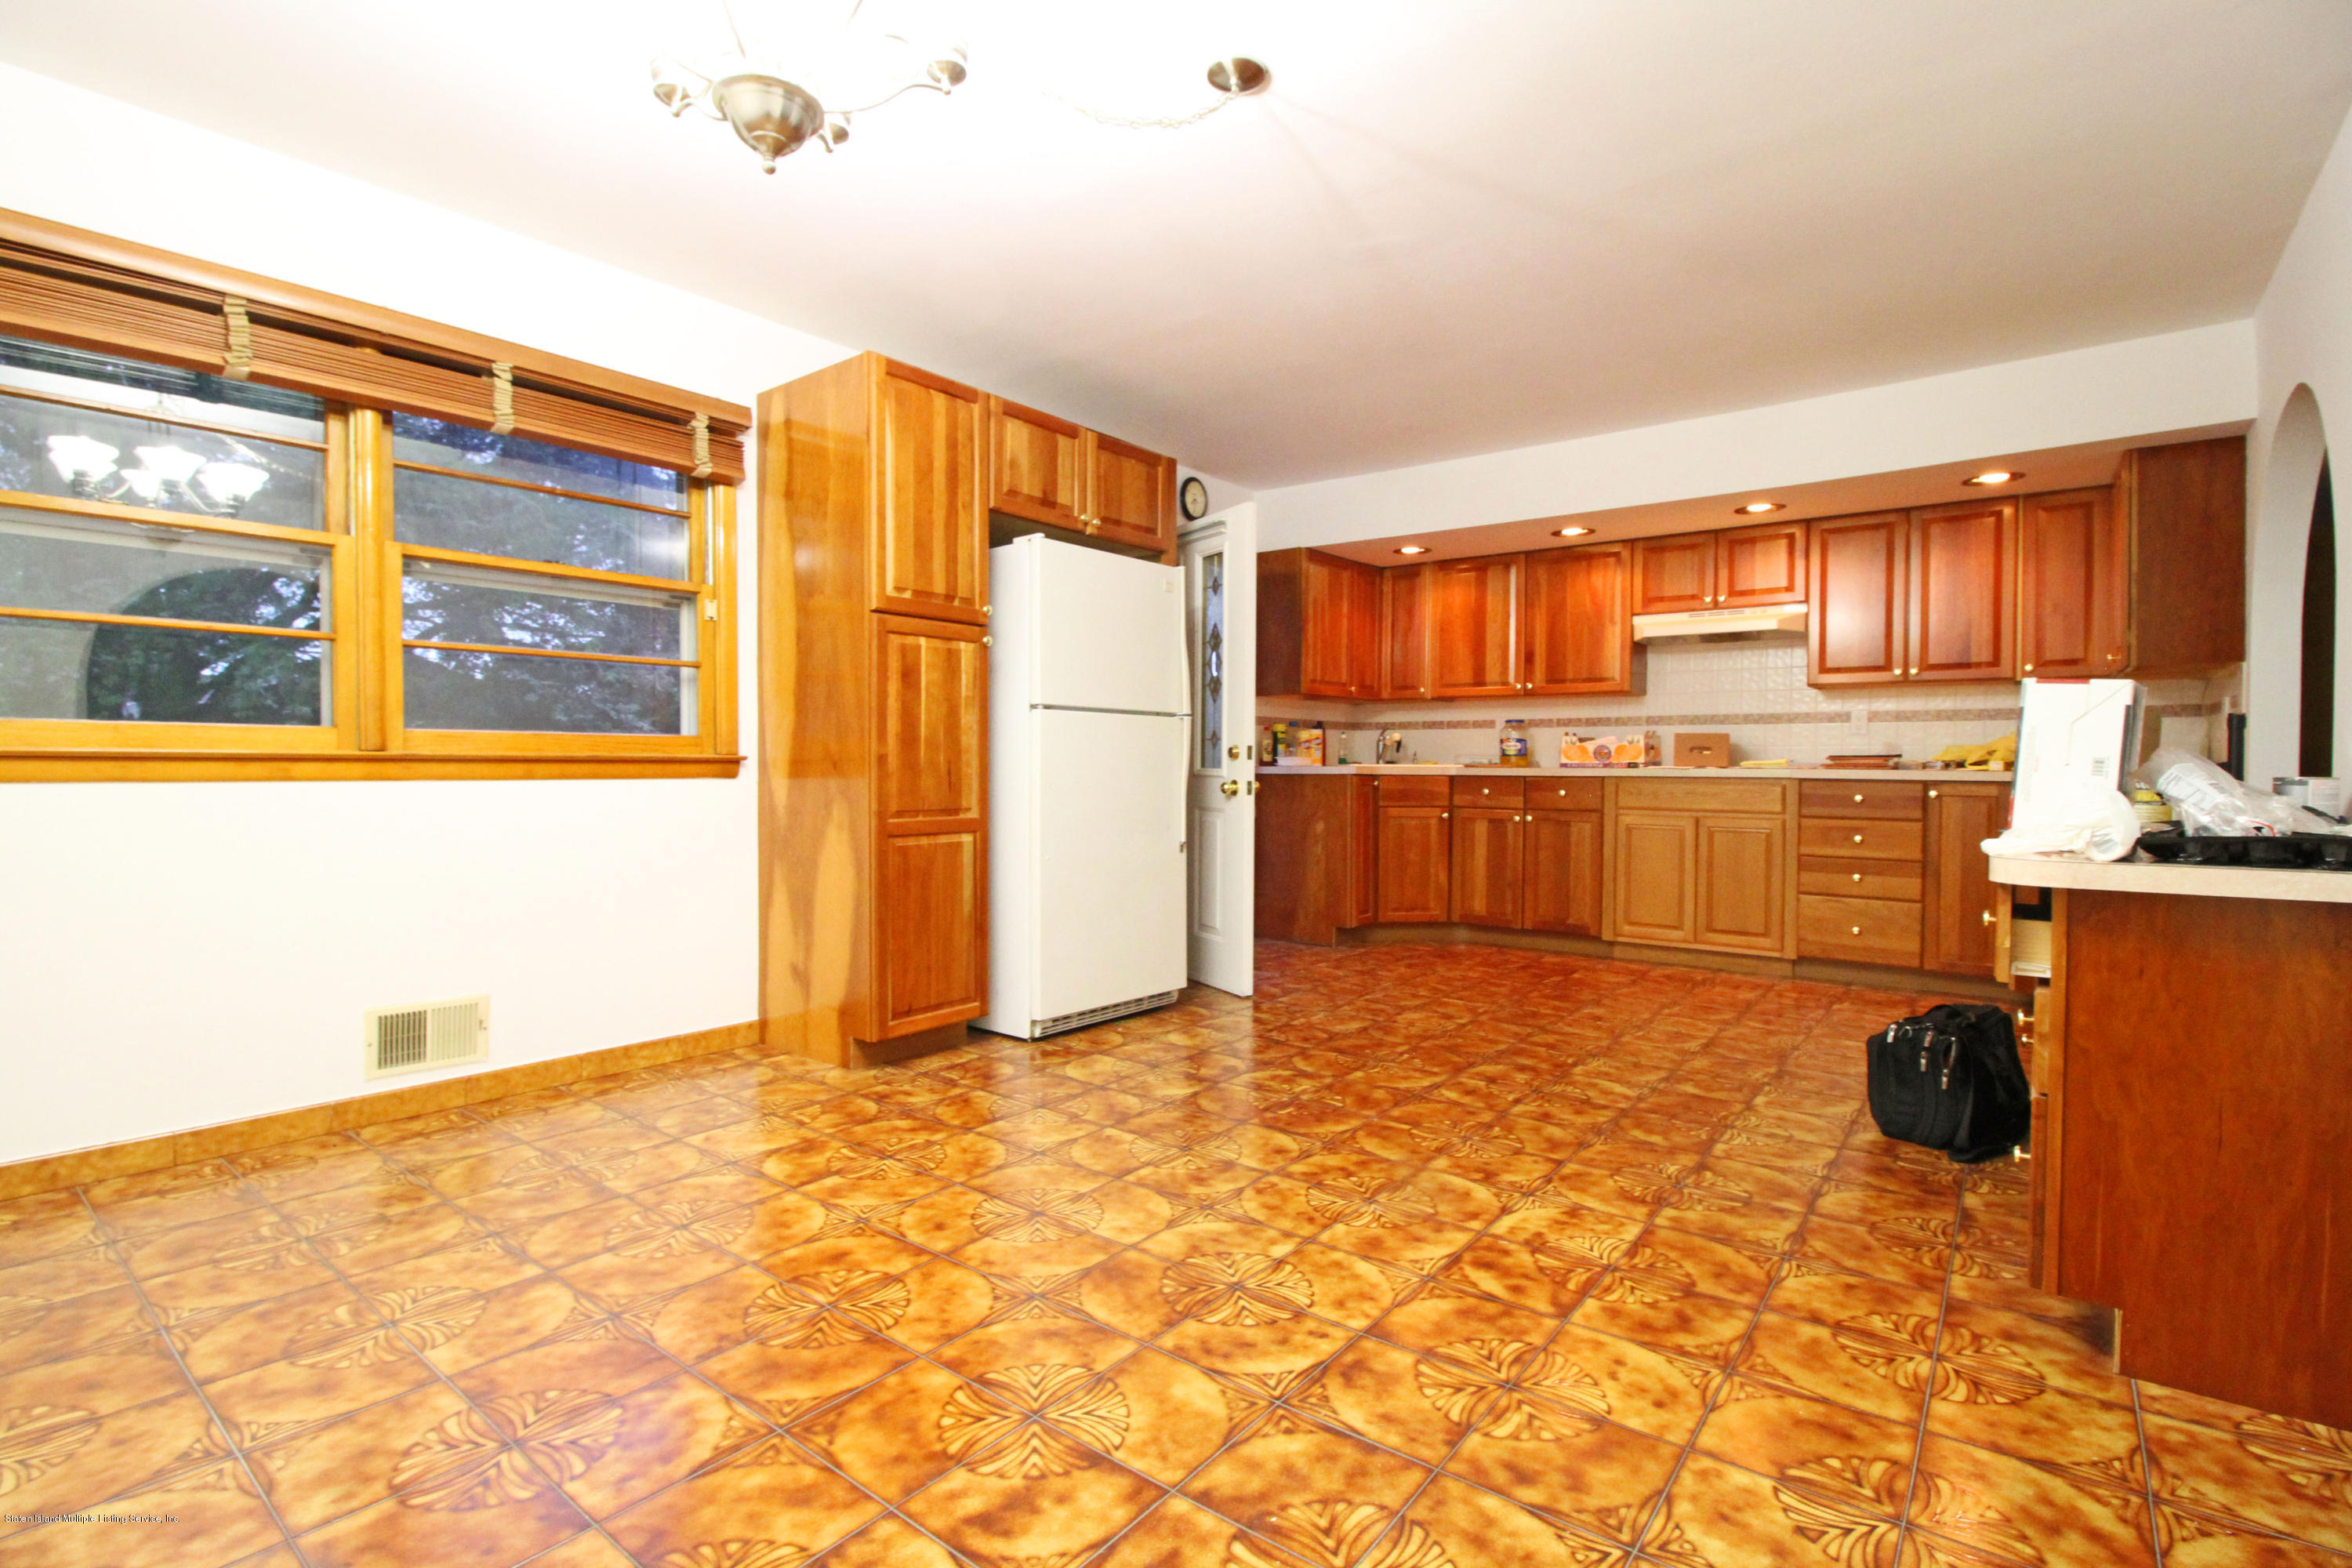 Single Family - Detached 547 Stafford Avenue  Staten Island, NY 10312, MLS-1138967-10